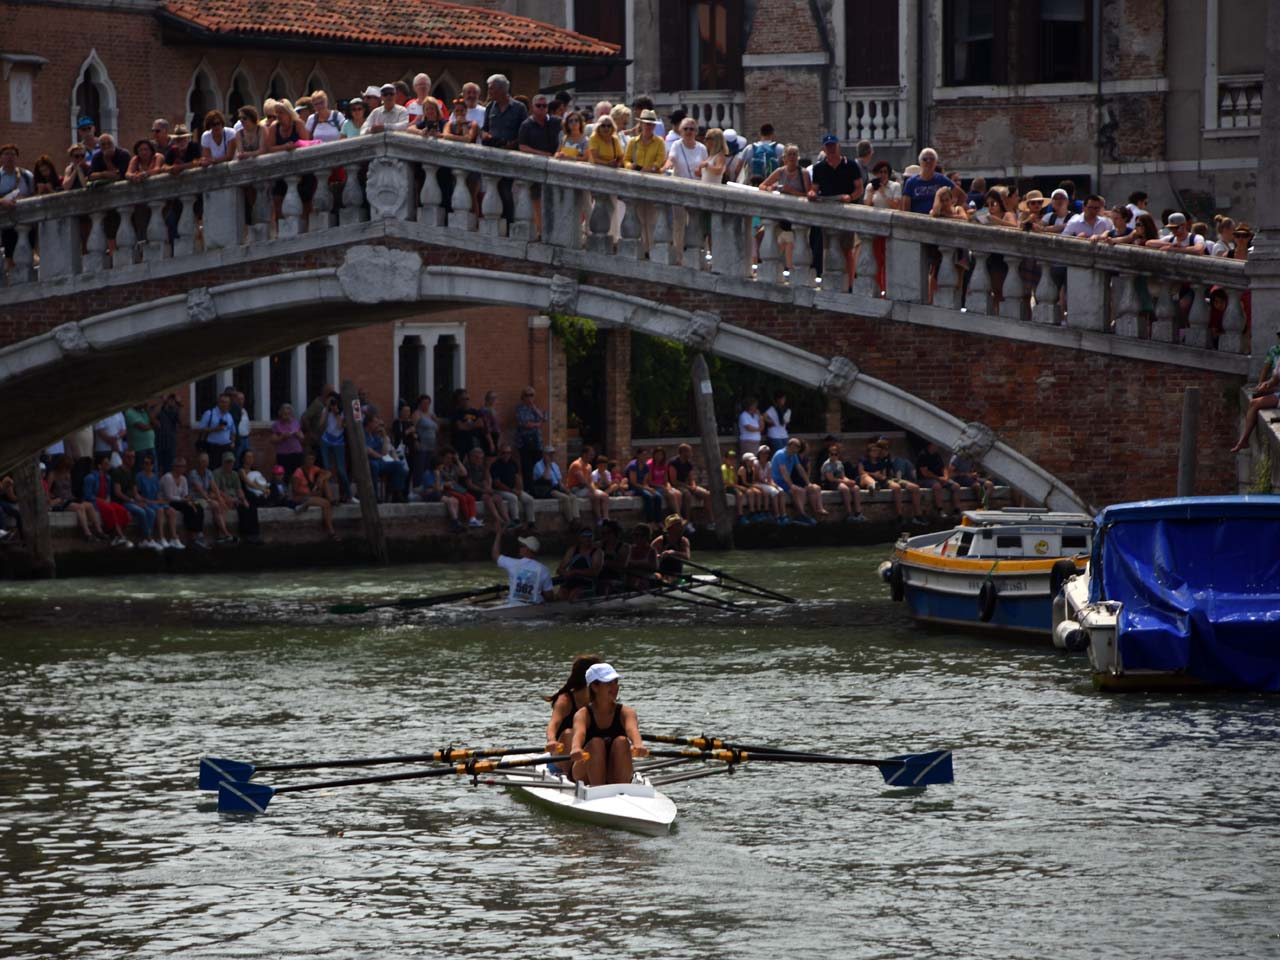 Locals and tourists alike lined the canals and bridges in support of the rowers